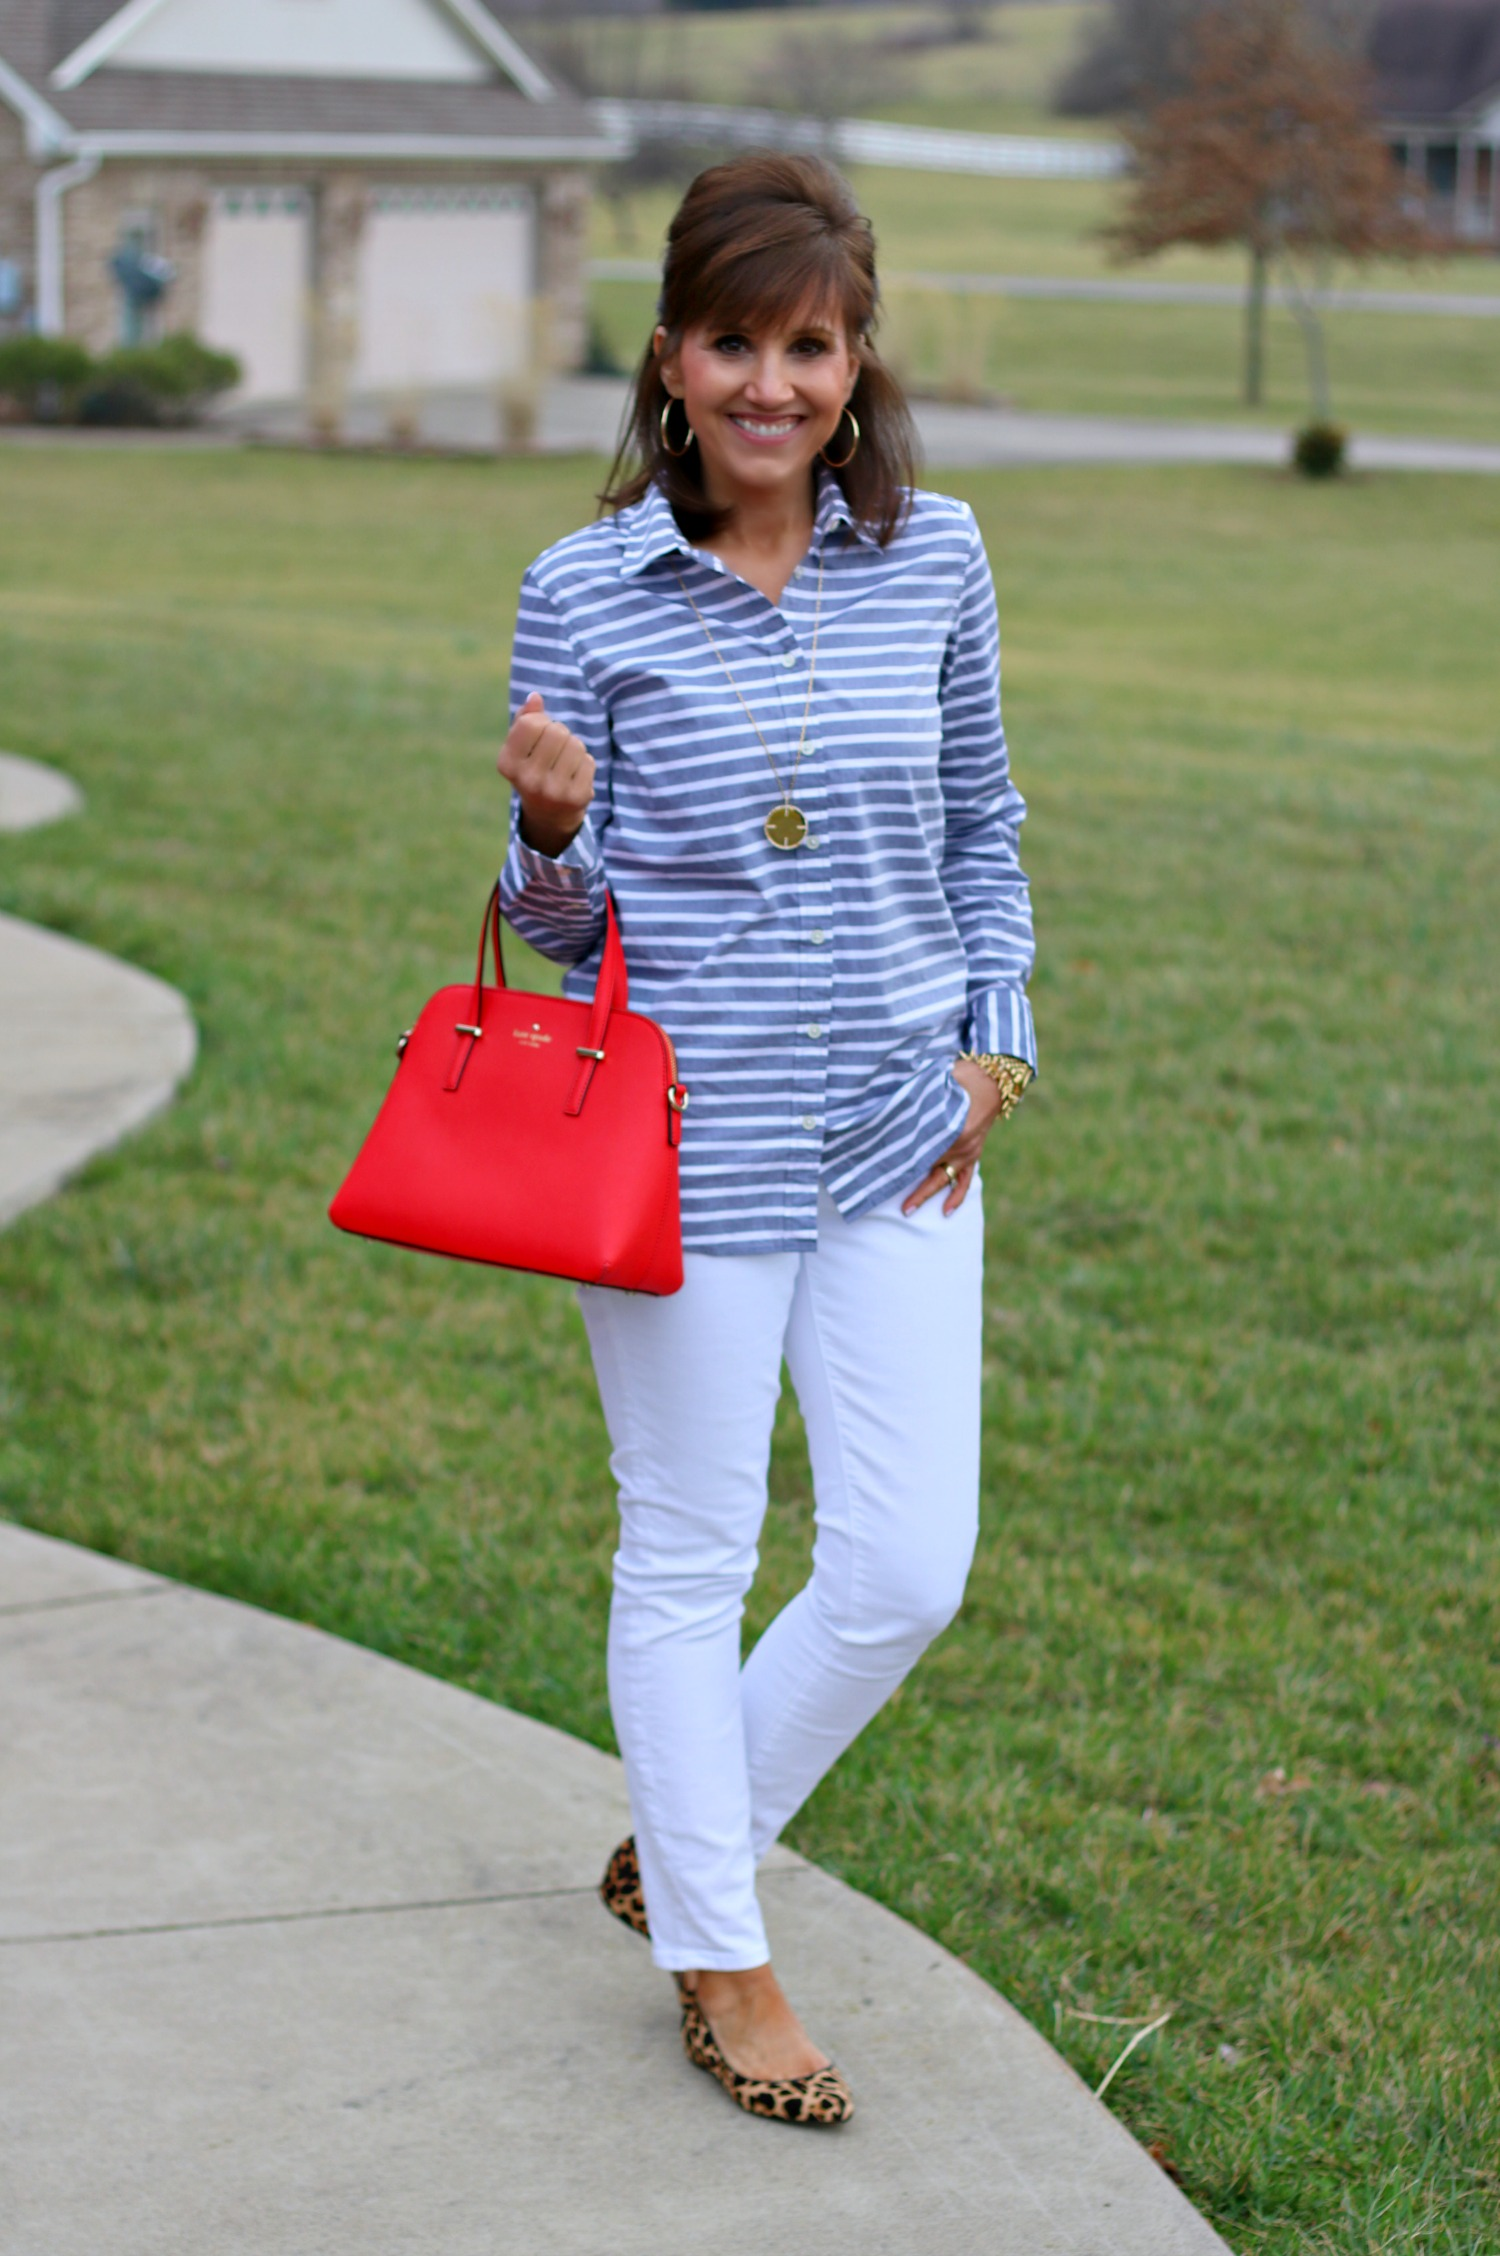 27 Days of Spring Fashion: Pop of Red